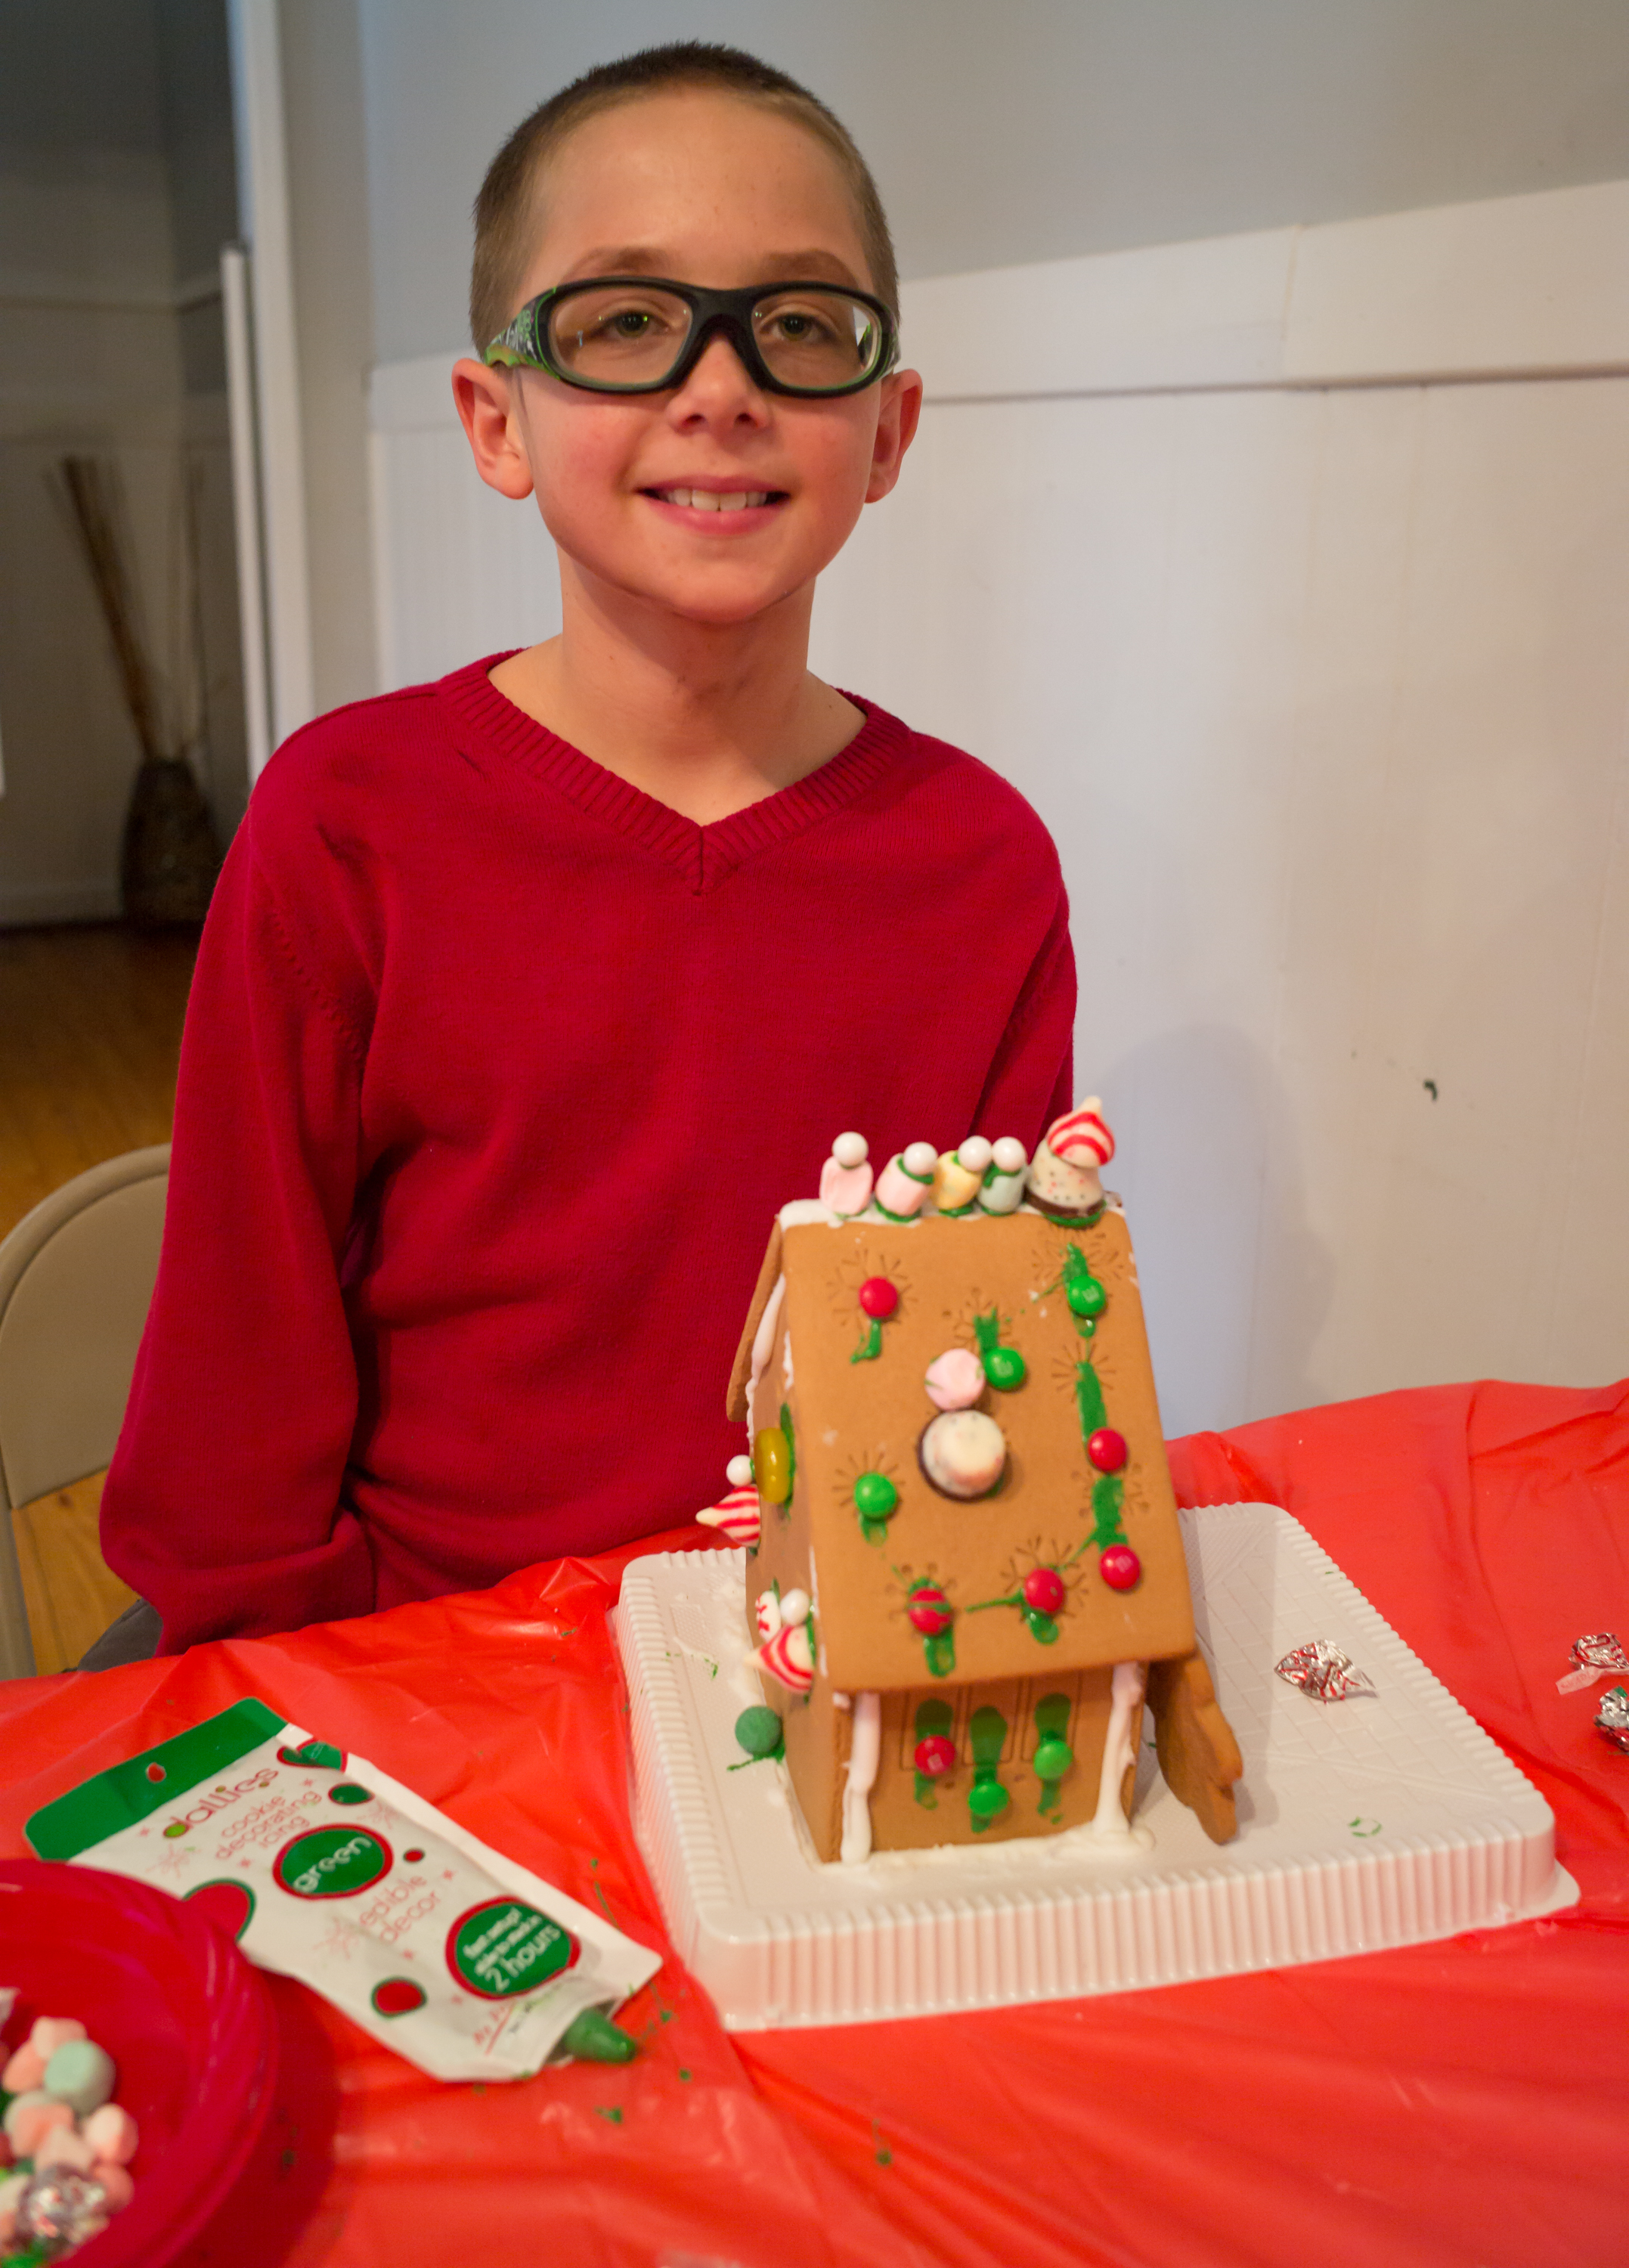 Gavin Williams poses with his architectural masterpiece.